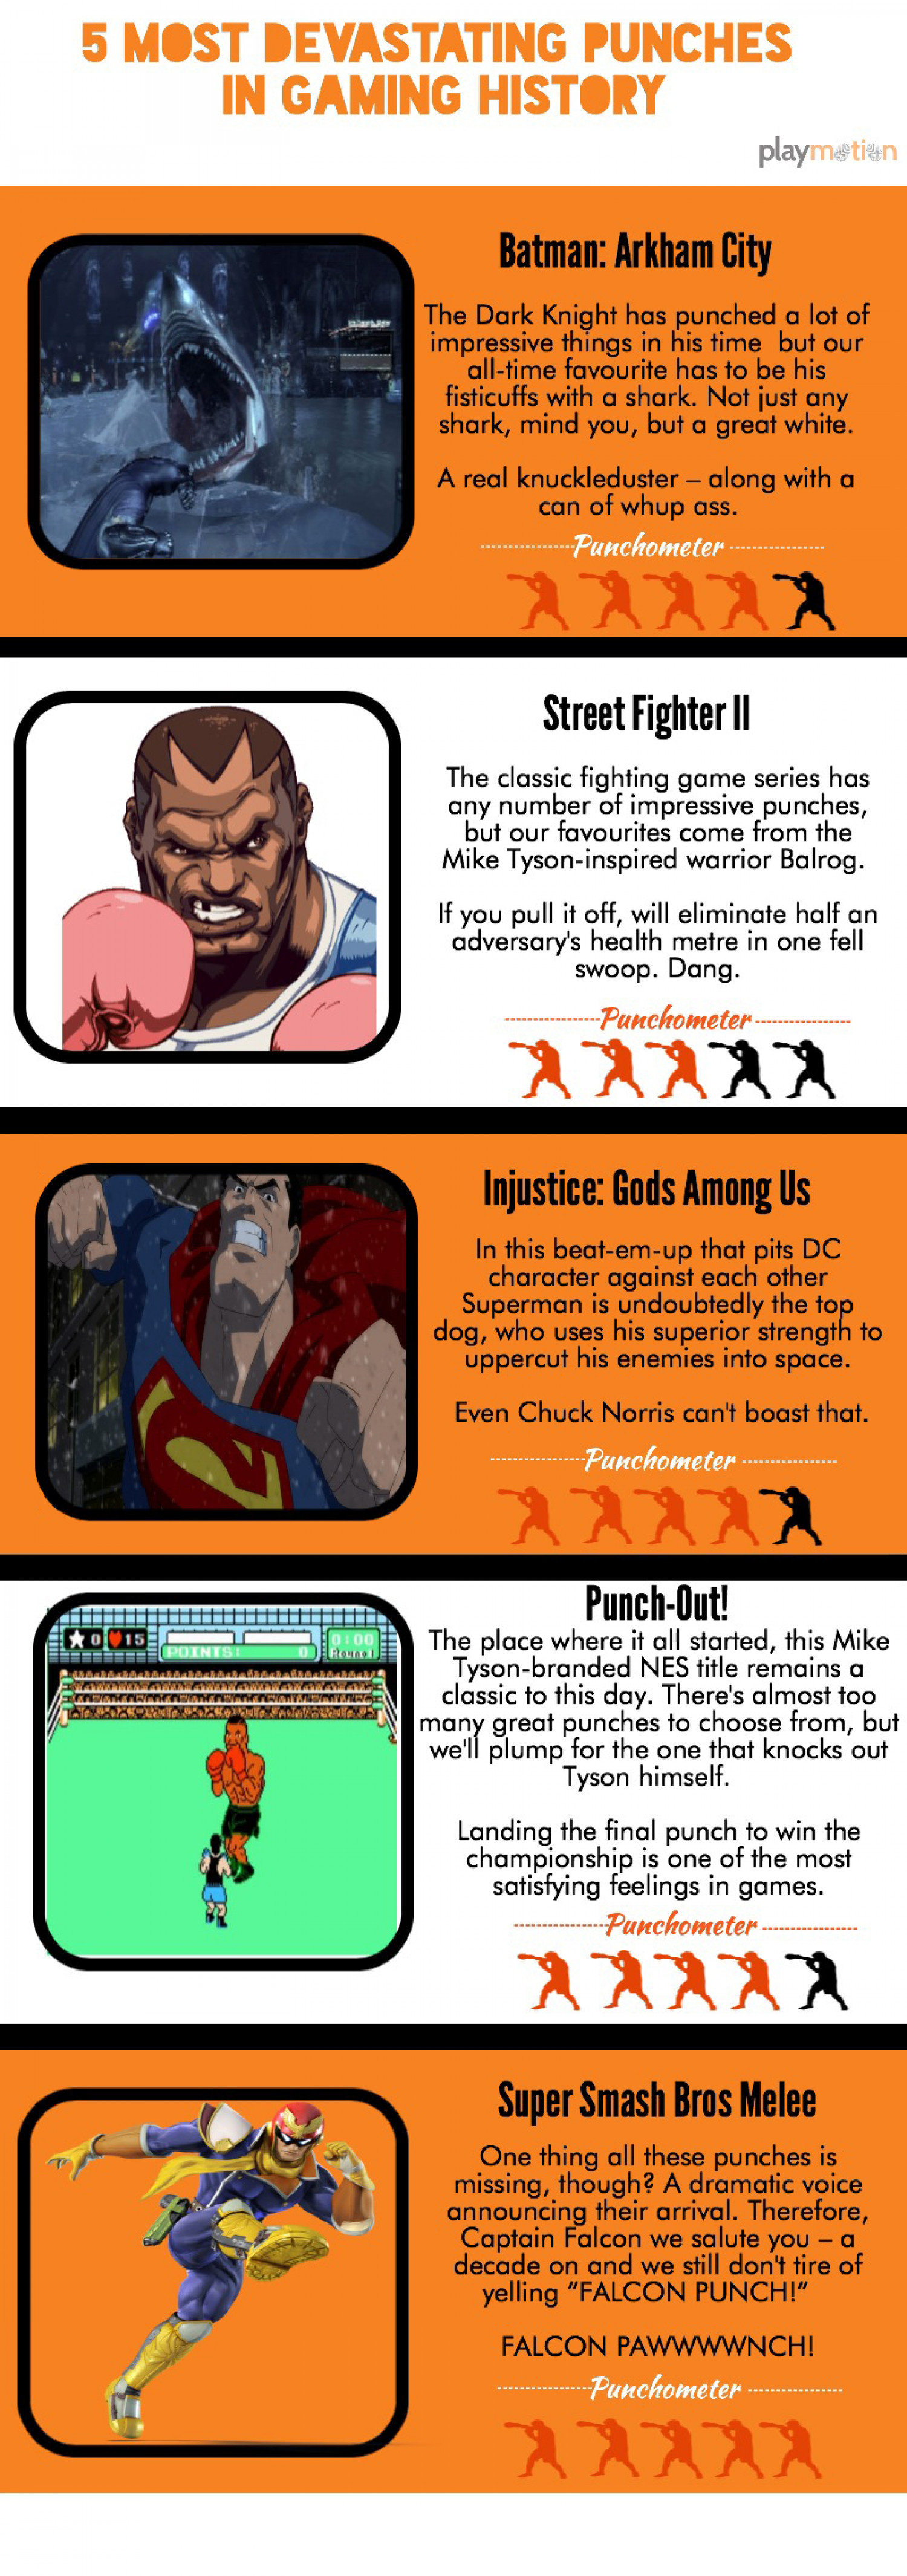 5 most devastating punches in the gaming industry Infographic